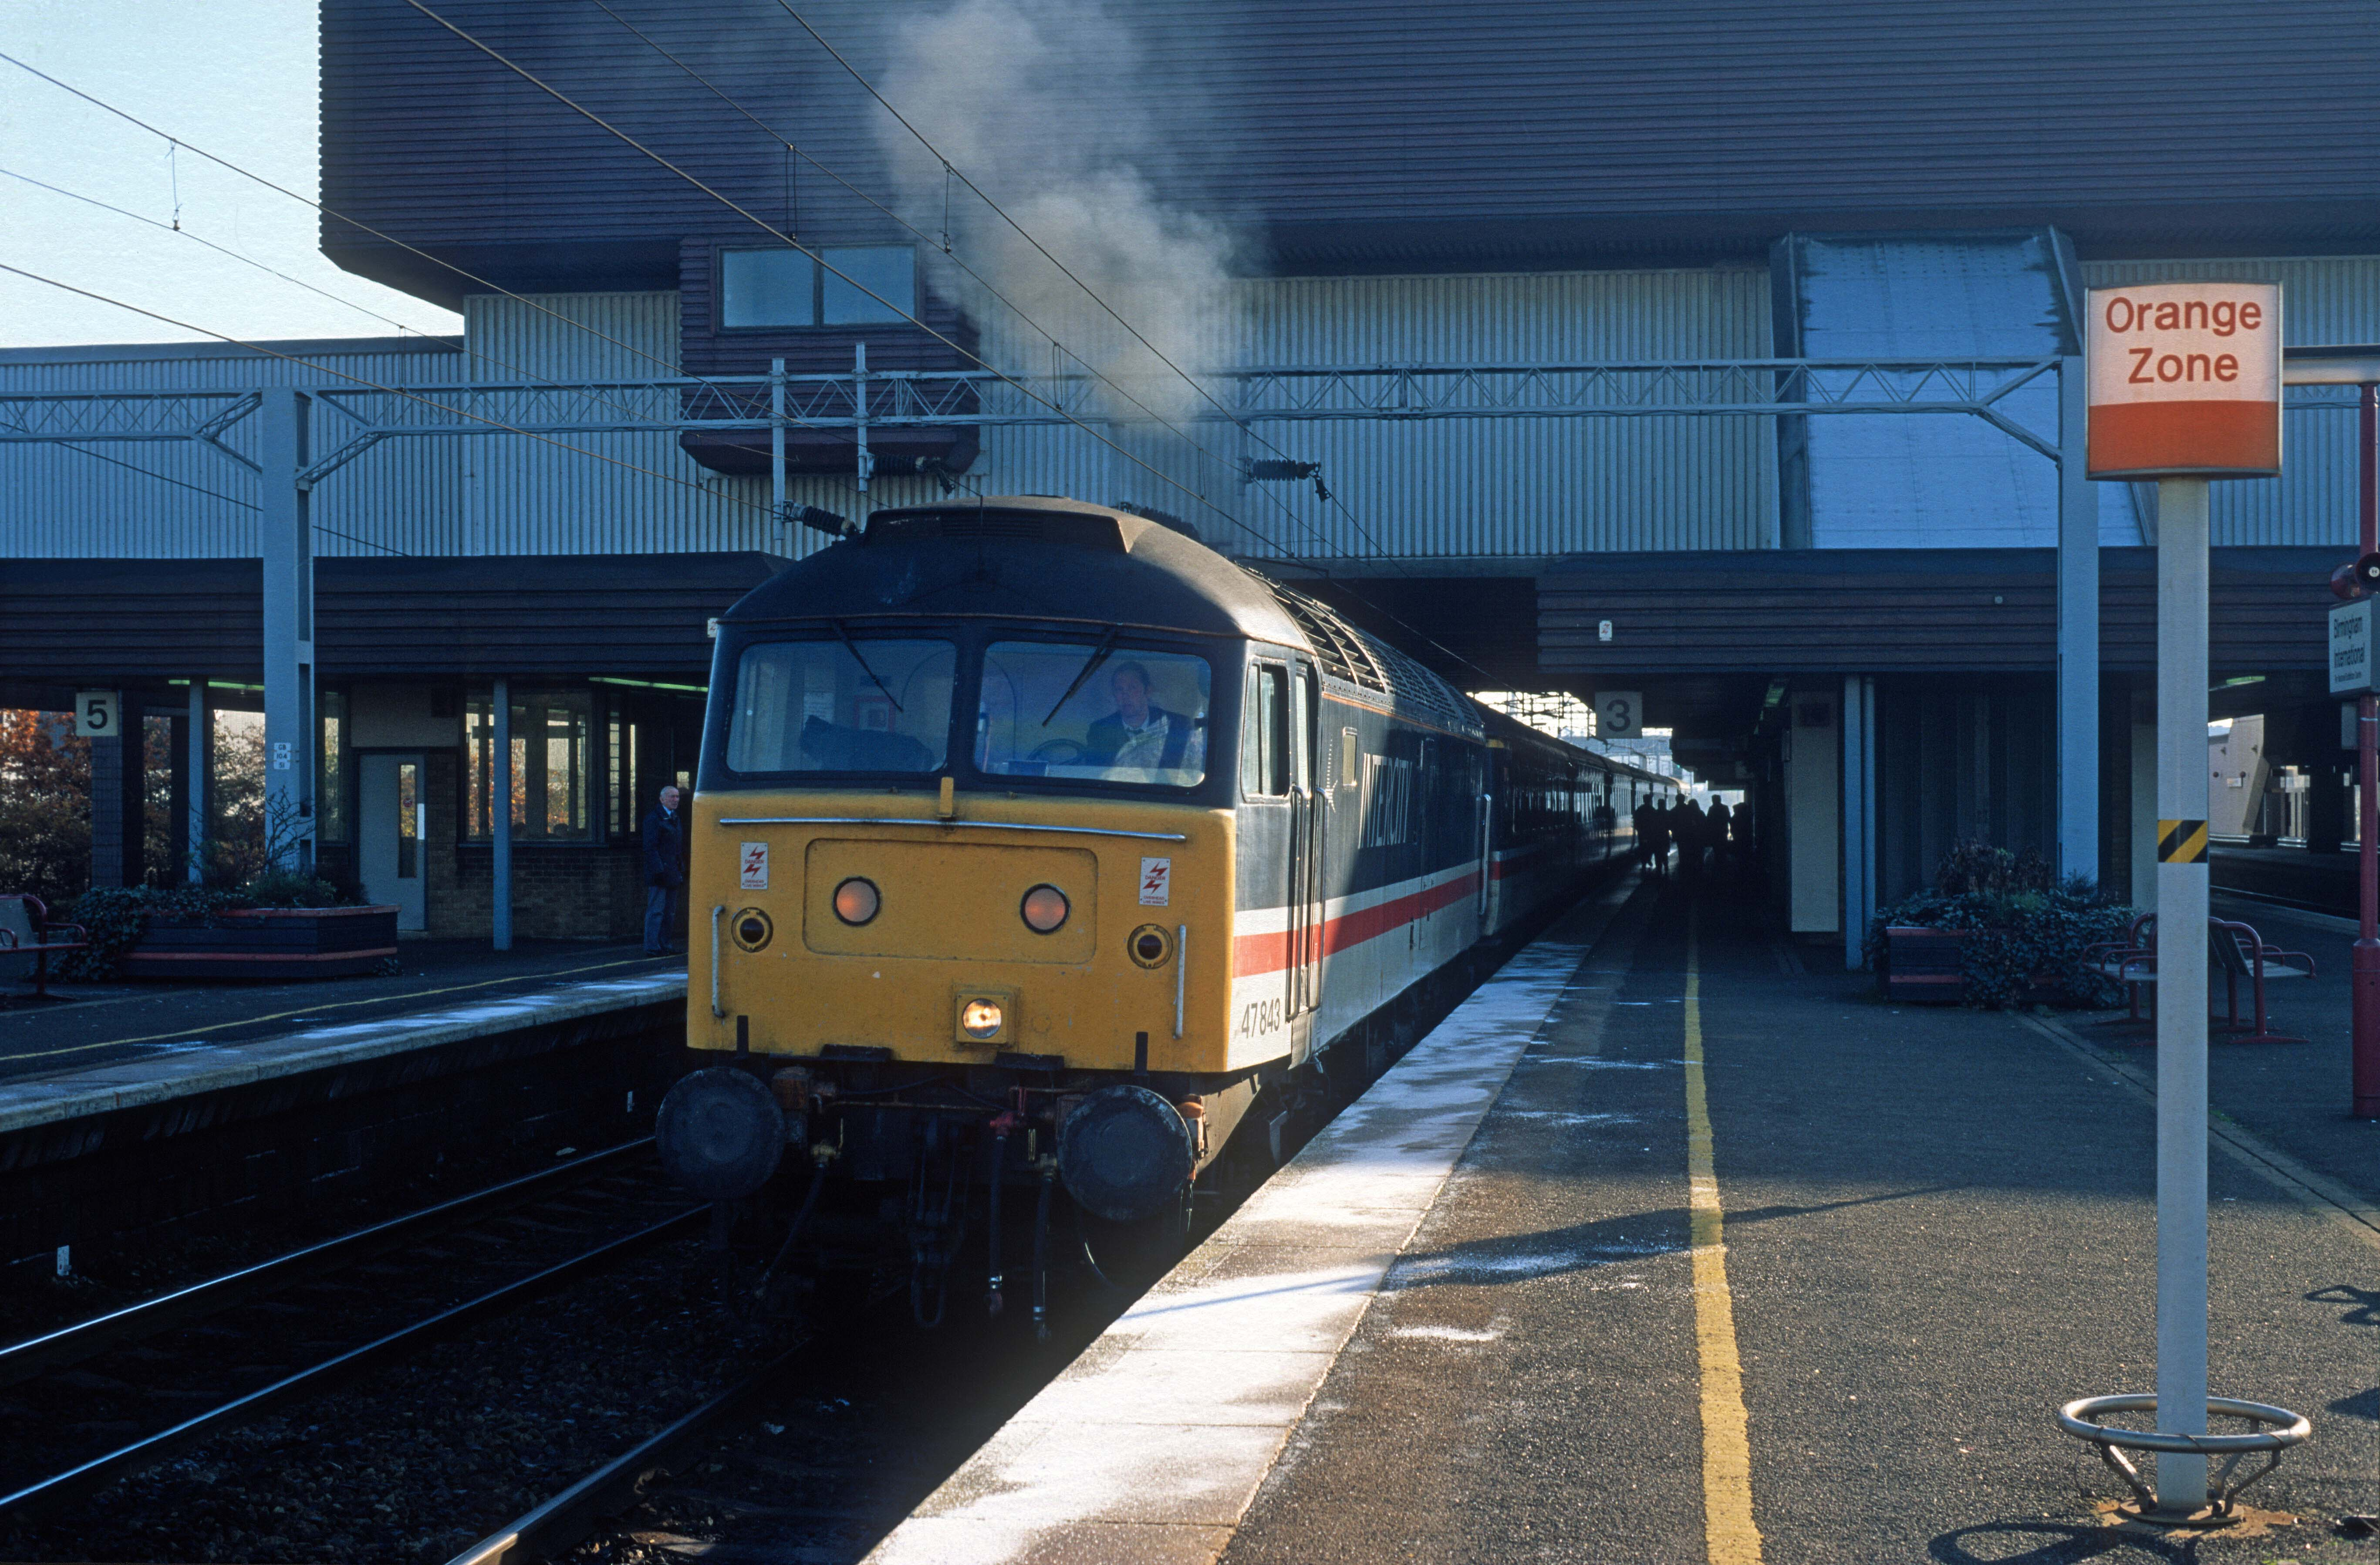 05373. 47843. 11.25 Birmingham International - Manchester Piccadilly. 18.11.95crop